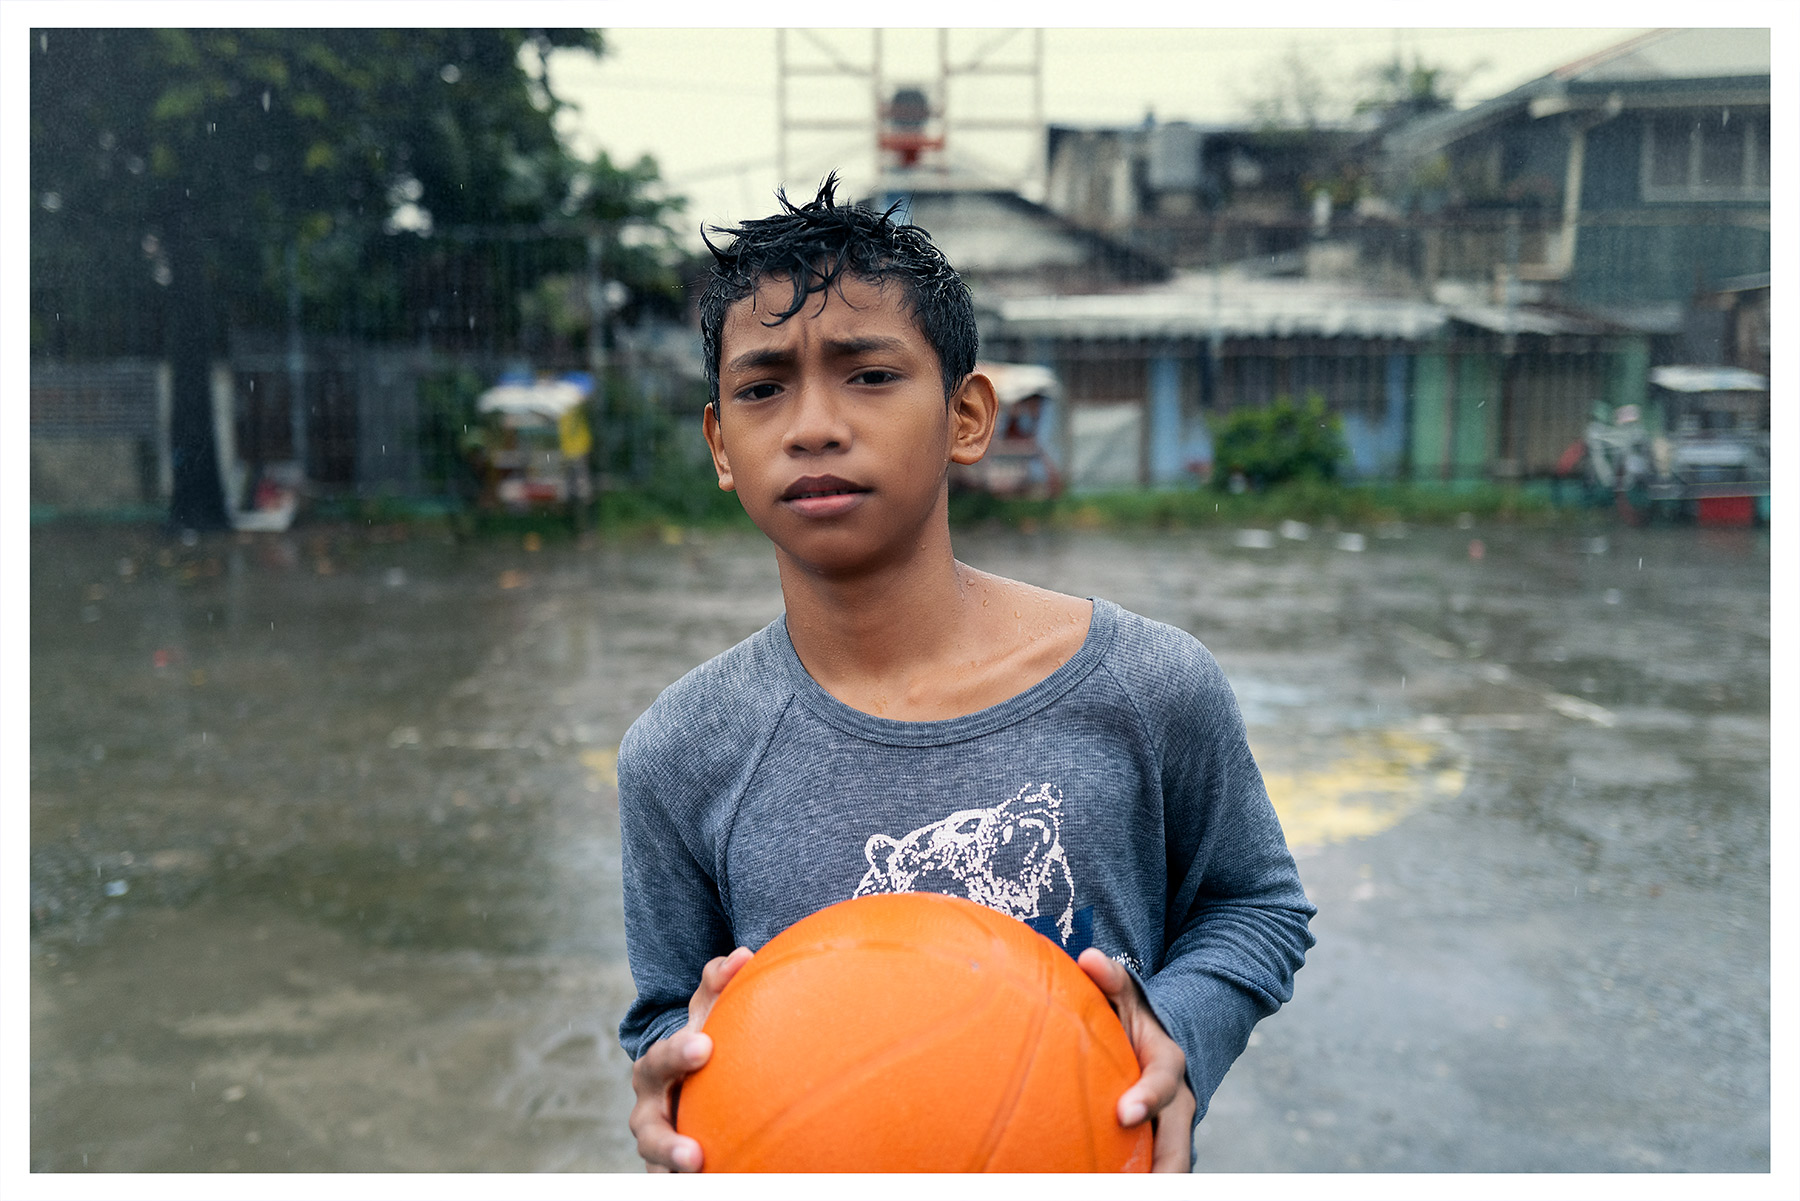 Goodboywolf_Phillippines_Portrait61